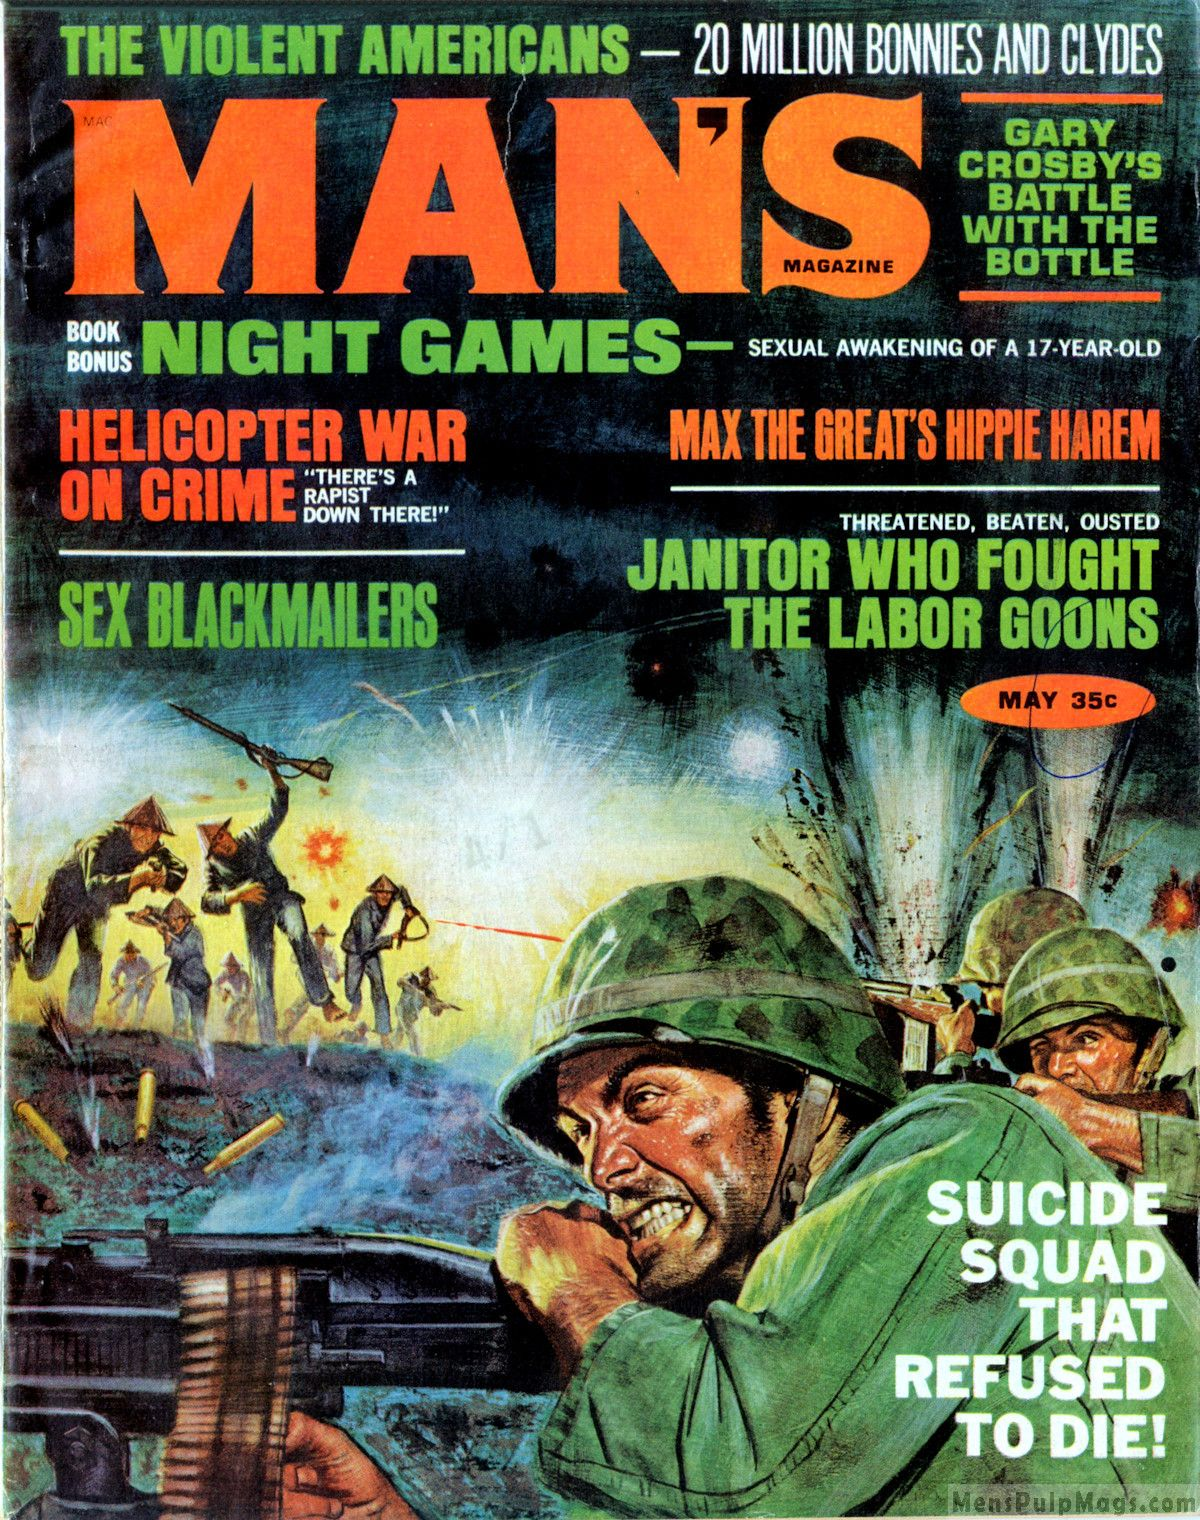 Before there was the comic book and movie Suicide Squad, there was the  men's pulp